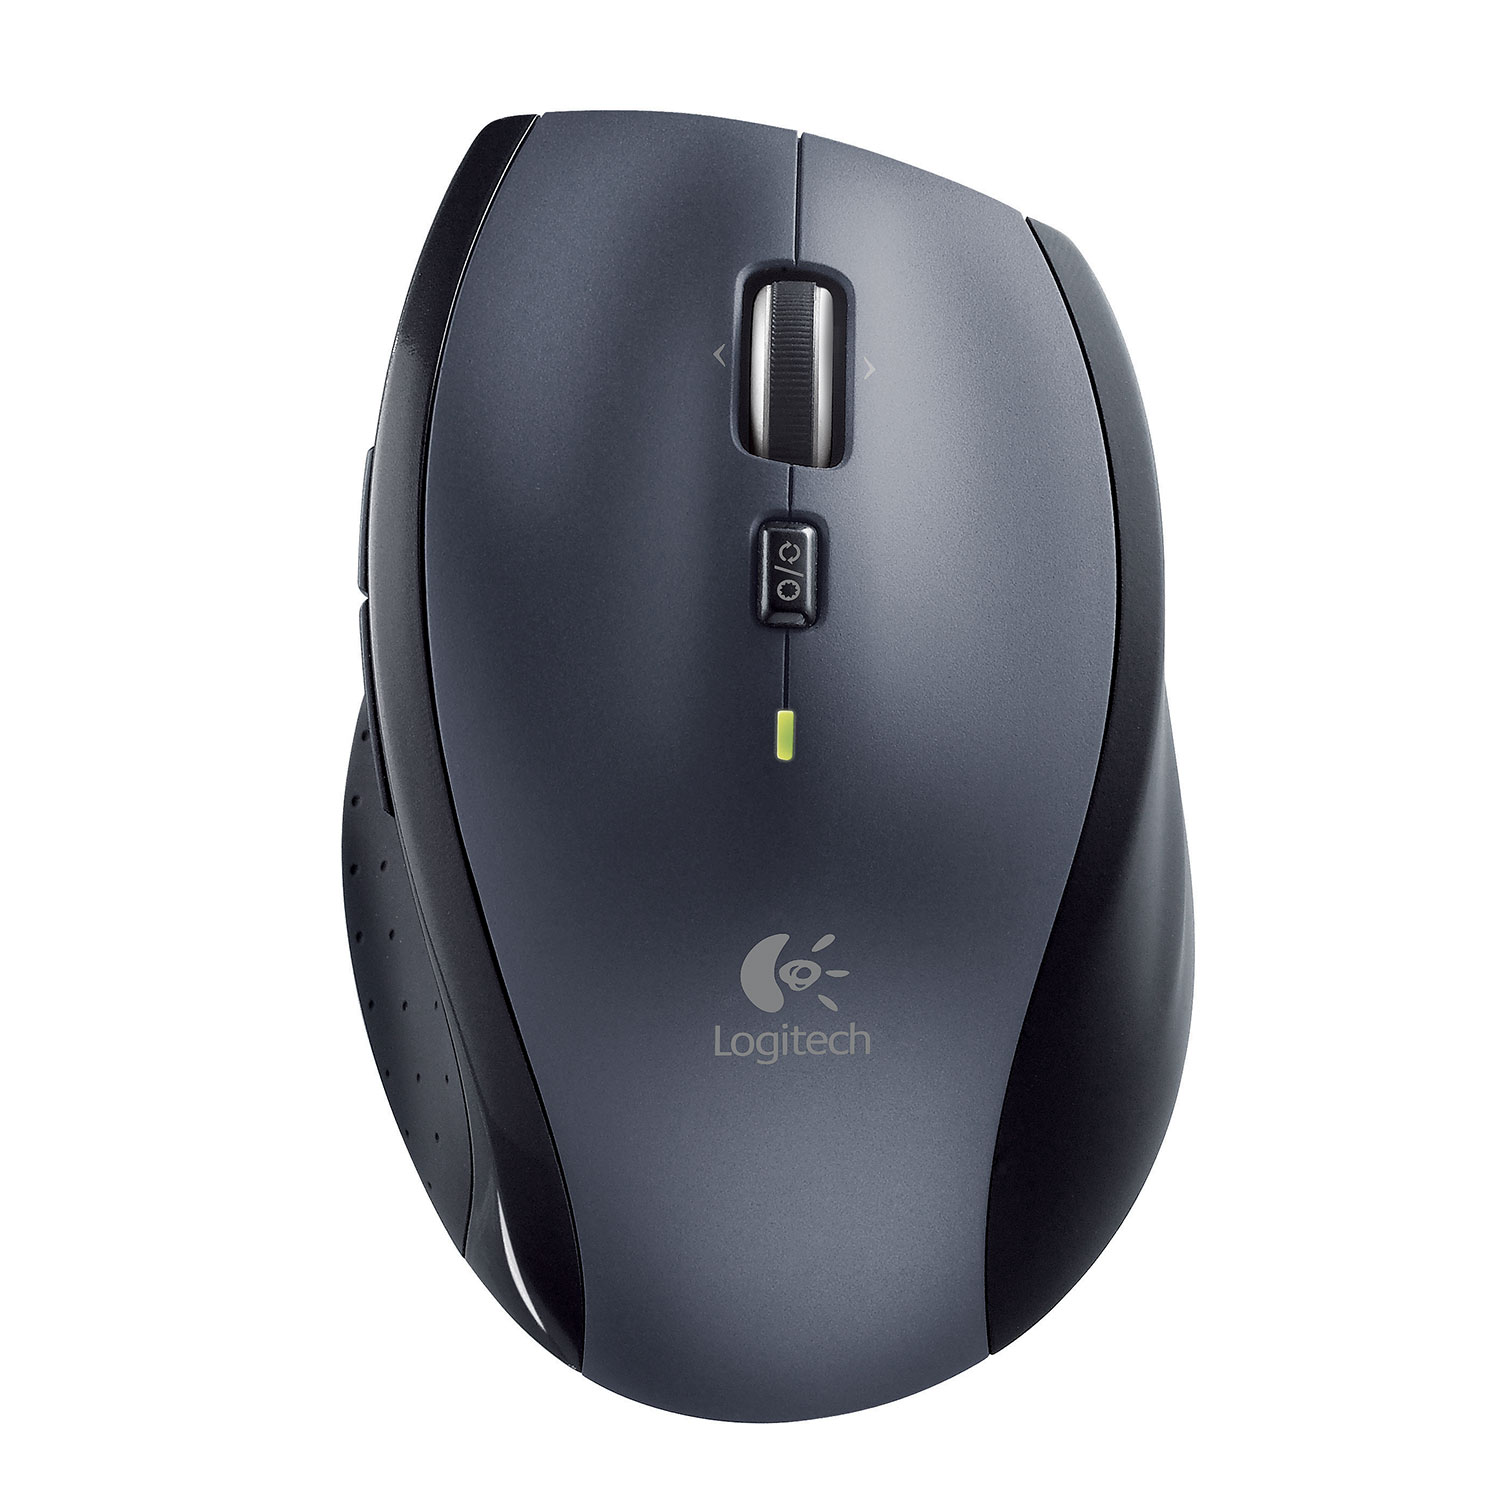 Logitech Marathon Wireless Laser Mouse M705 Mice Best Pad Microsoft Buy Canada